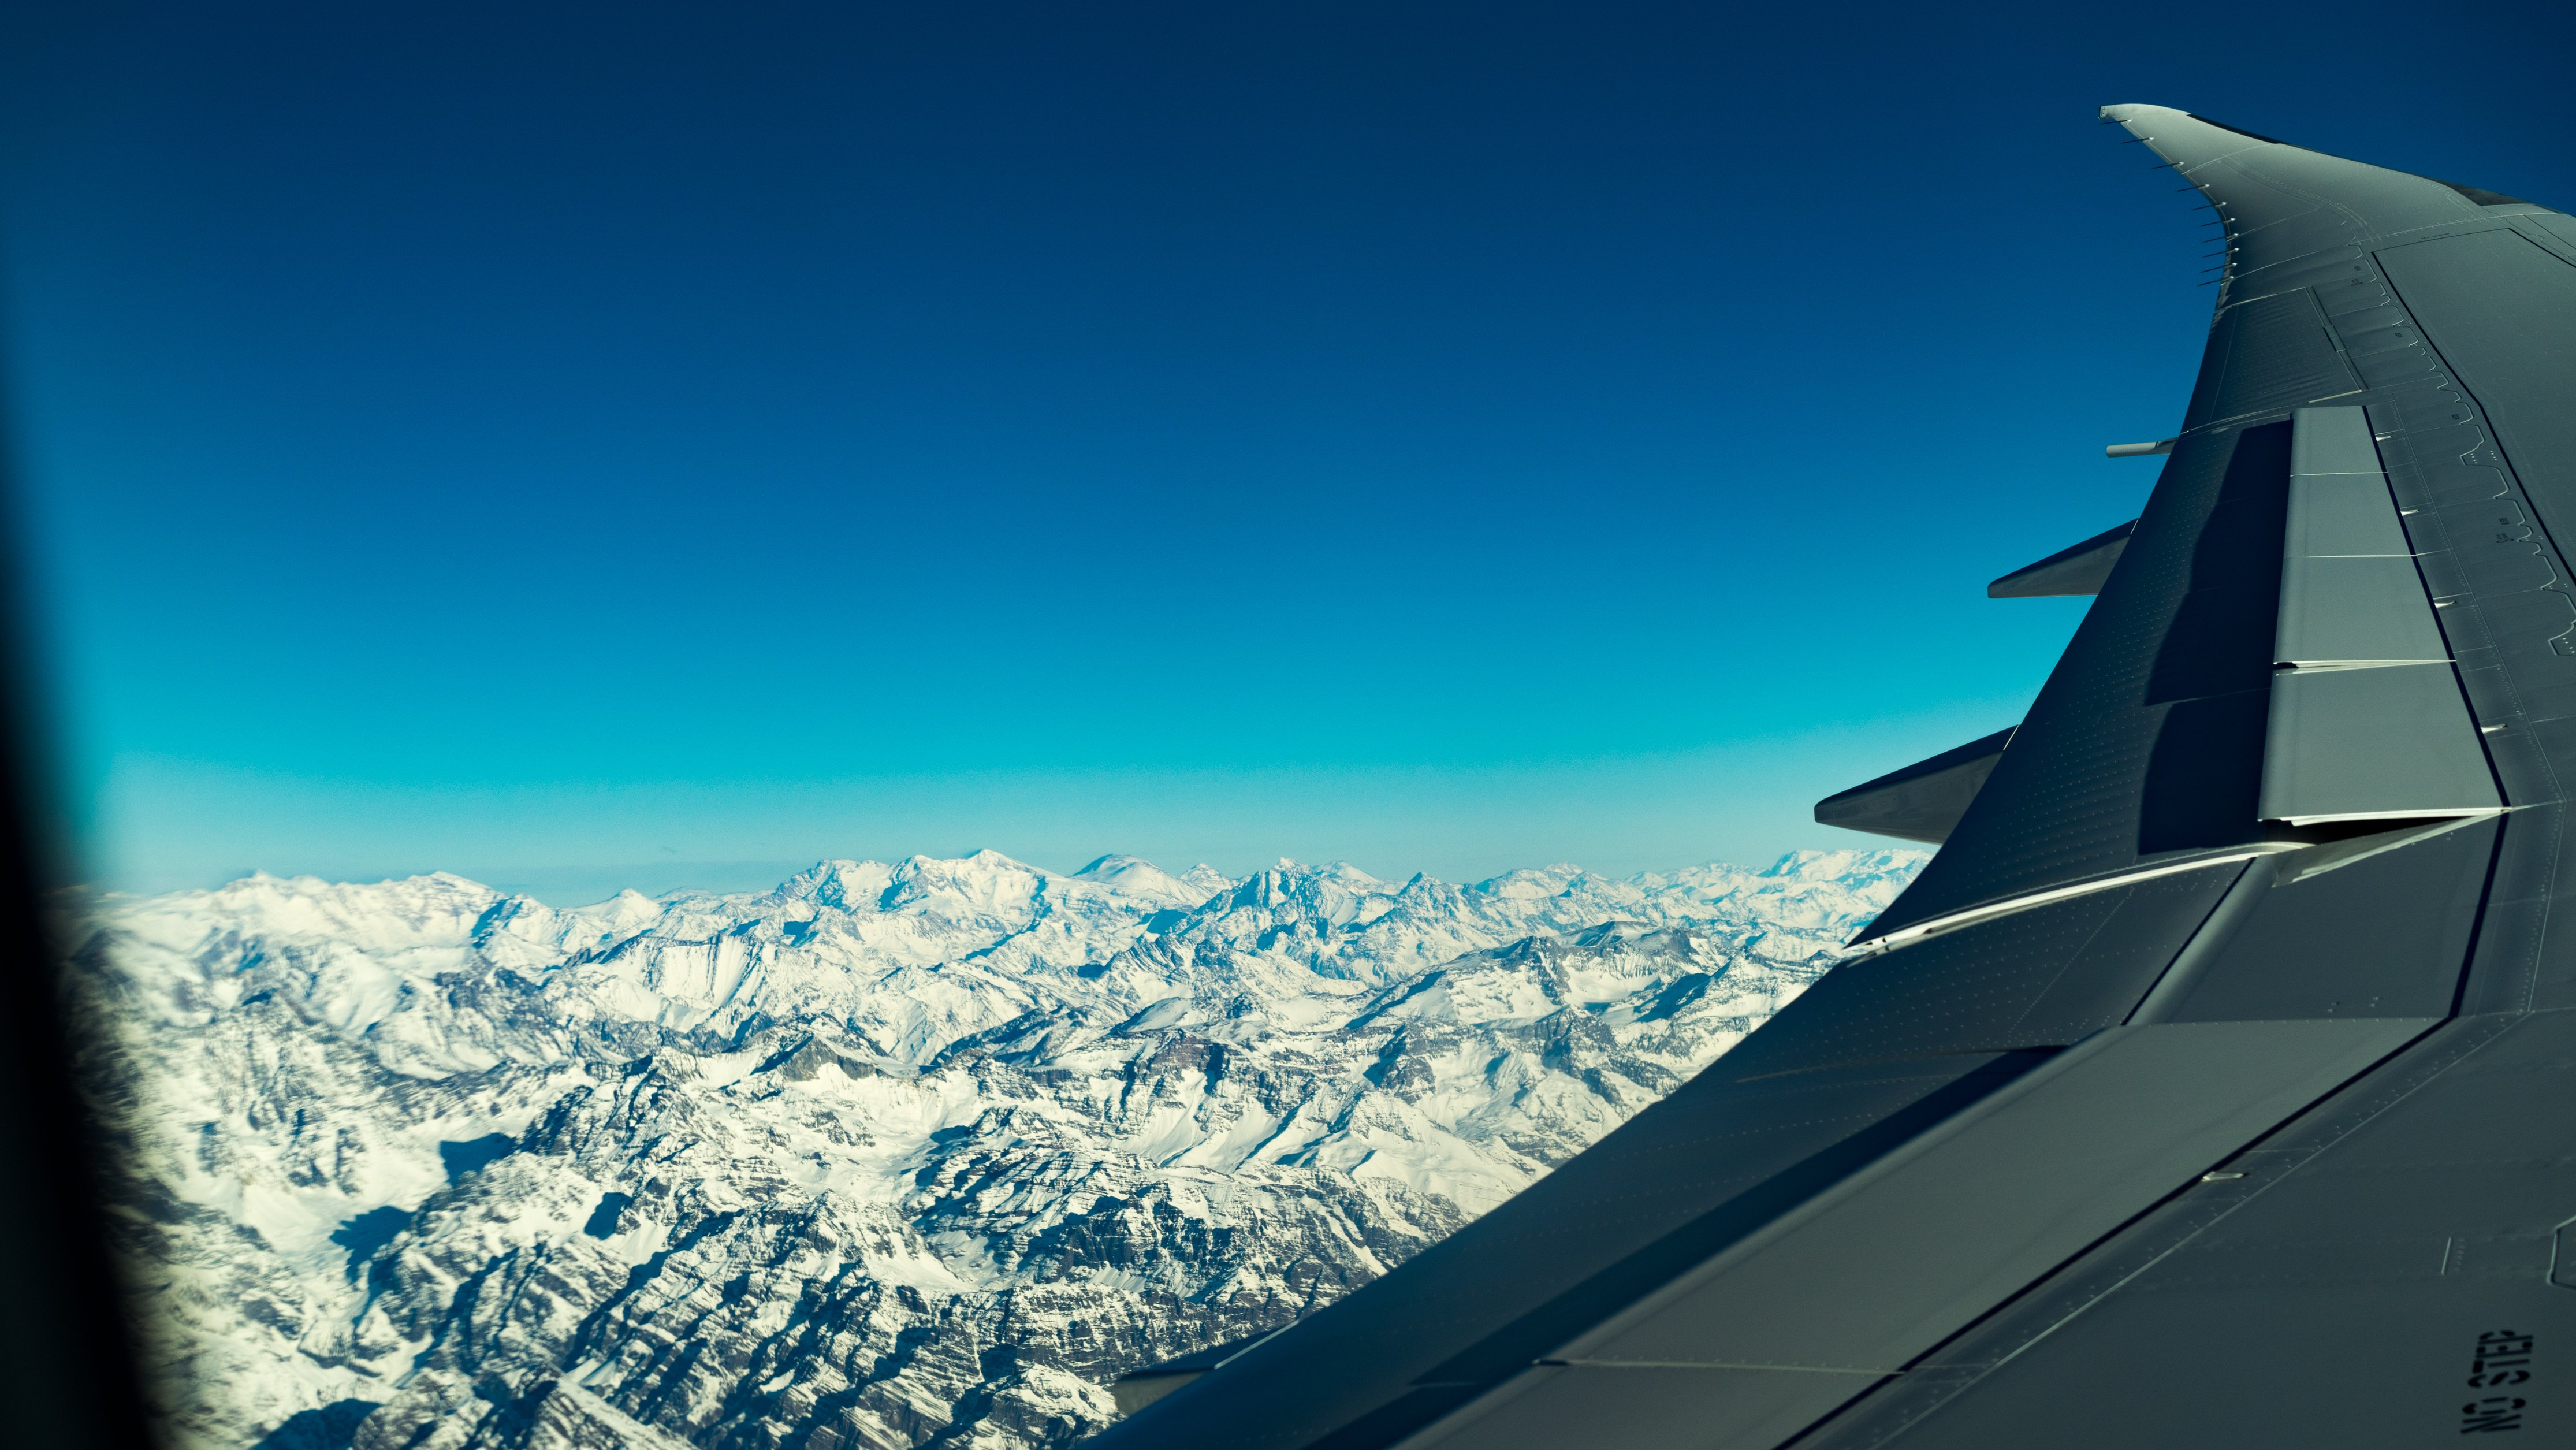 Airplane over mountains photo